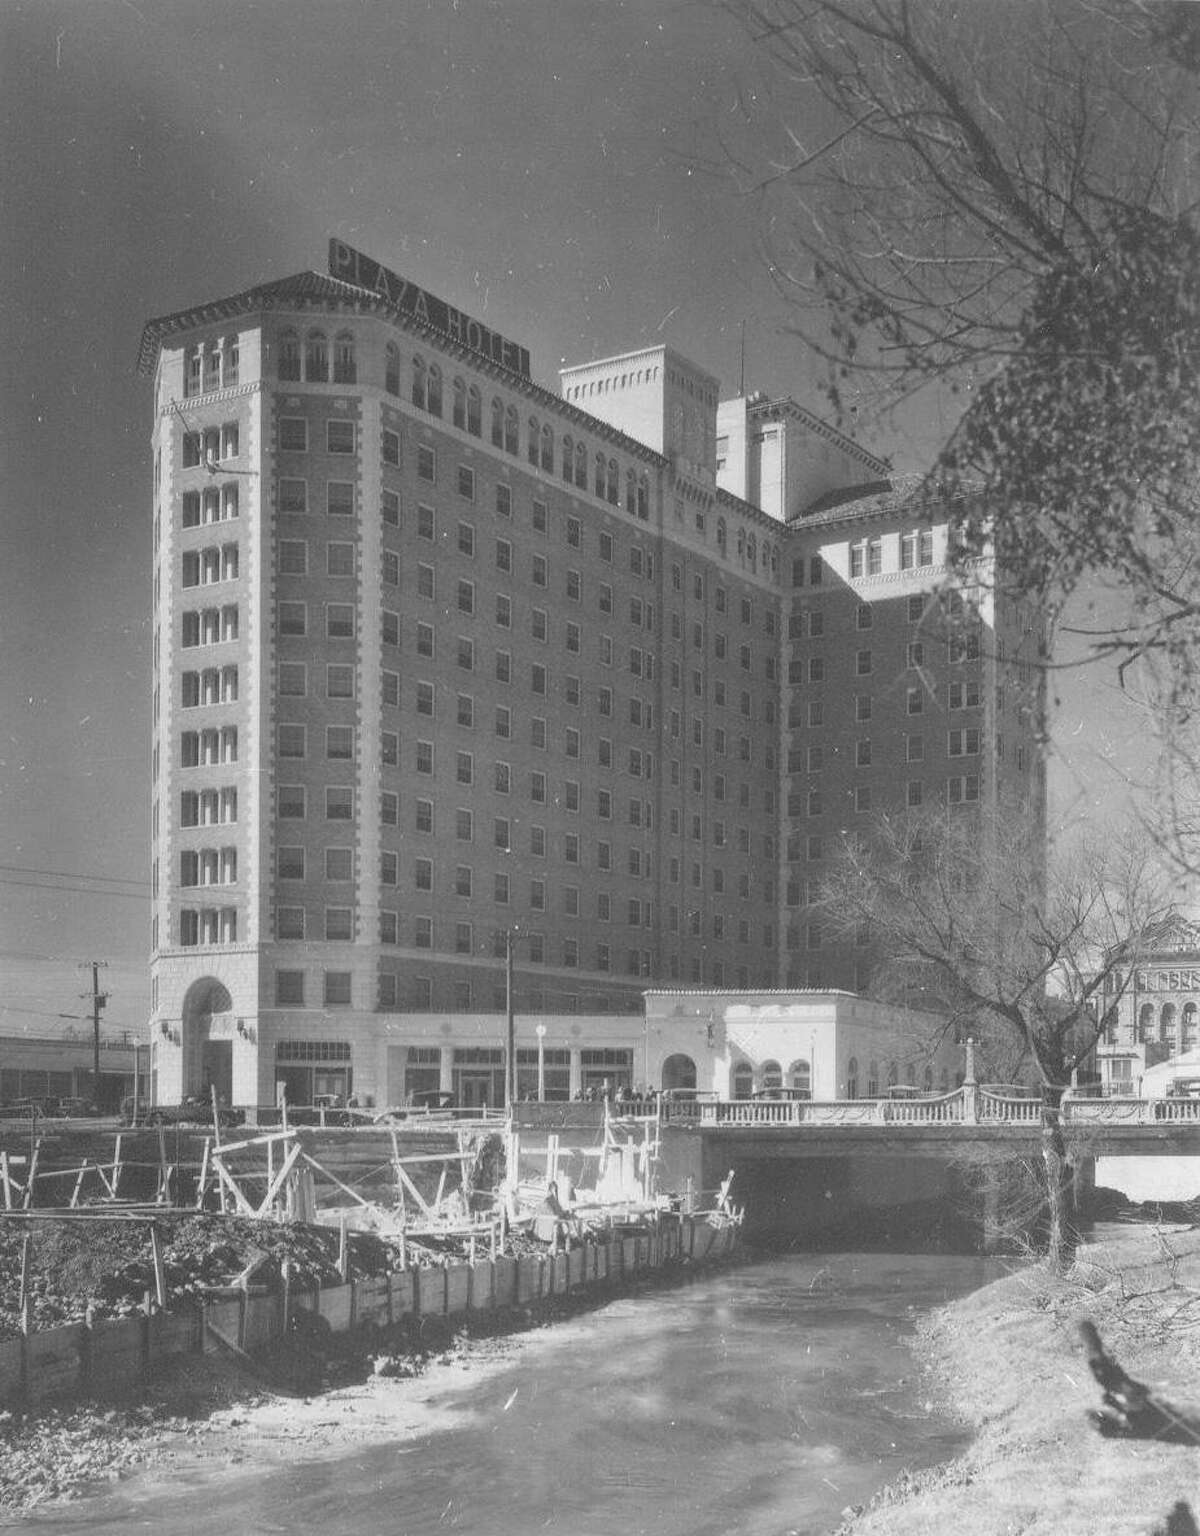 """An undated view of the original Plaza Hotel in San Antonio, built in the late 1920s near the intersection of St. Mary's Street and Villita streets. It's now the Granada Homes apartments, across from the Tower Life building. It was advertised as """"located on the bank of the river in the downtown section ... removed from the heat and congested traffic of a main thoroughfare"""" yet with all the amenities, including restaurants, of a """"big modern hotel."""""""